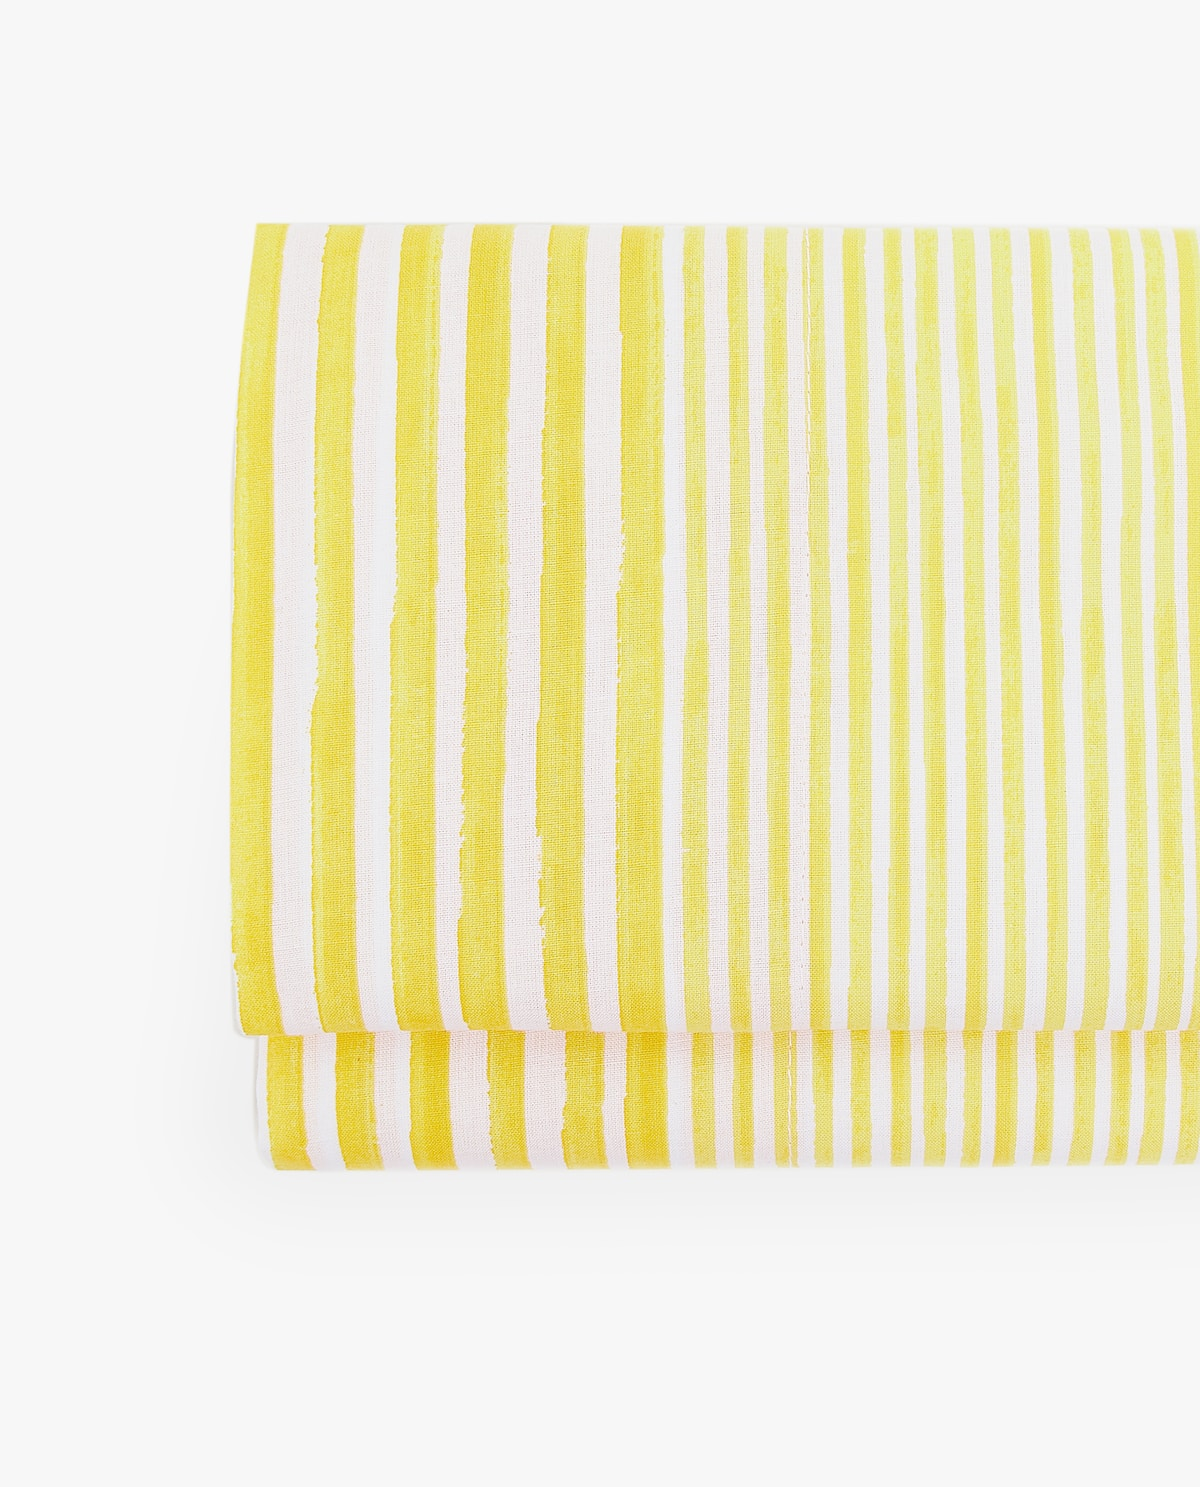 Yellow striped sheets from Zara Home